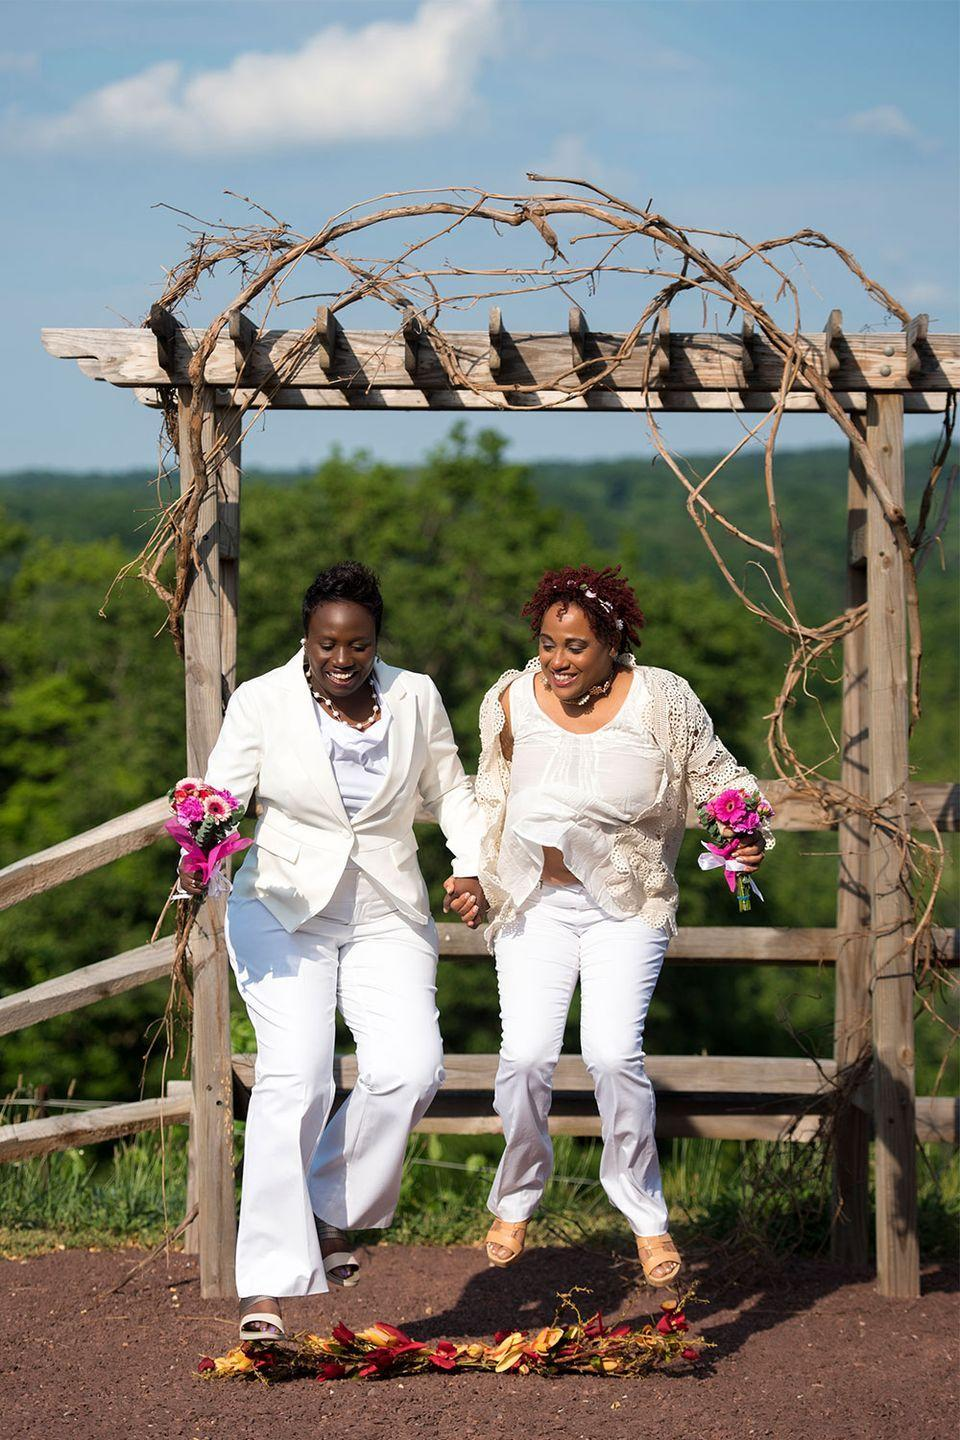 """<p>Marci and Tracey jumped the broom on June 24, 2016. """"Thinking about our day, the broom represented our leap of faith to choose each other, to choose love and to commit to our amazing journey,"""" they said.</p>"""